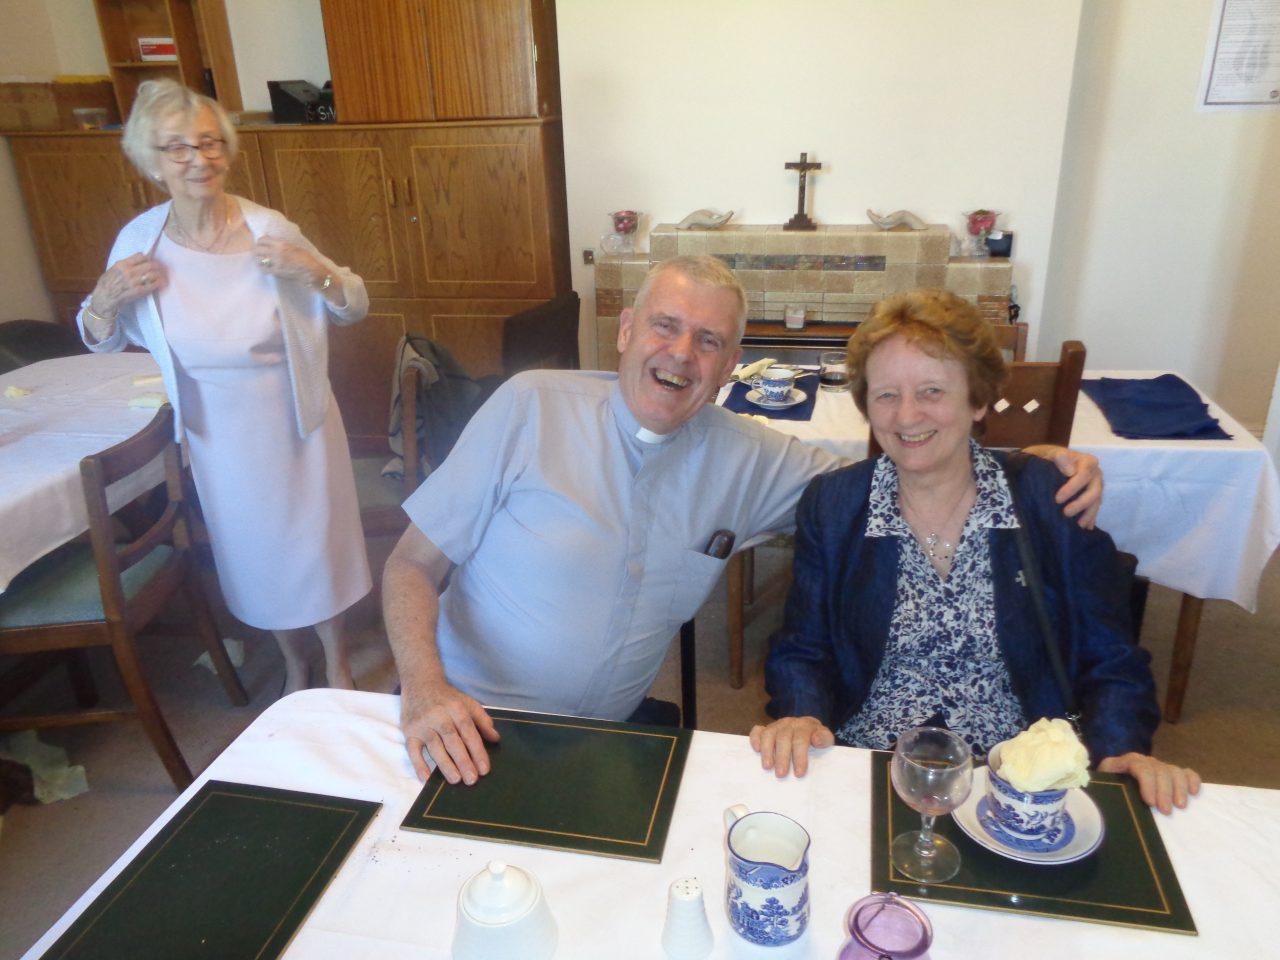 Fr. Paul Walsh SM and a Marist Sister at the Lunch after Fr. Tom's First Mass